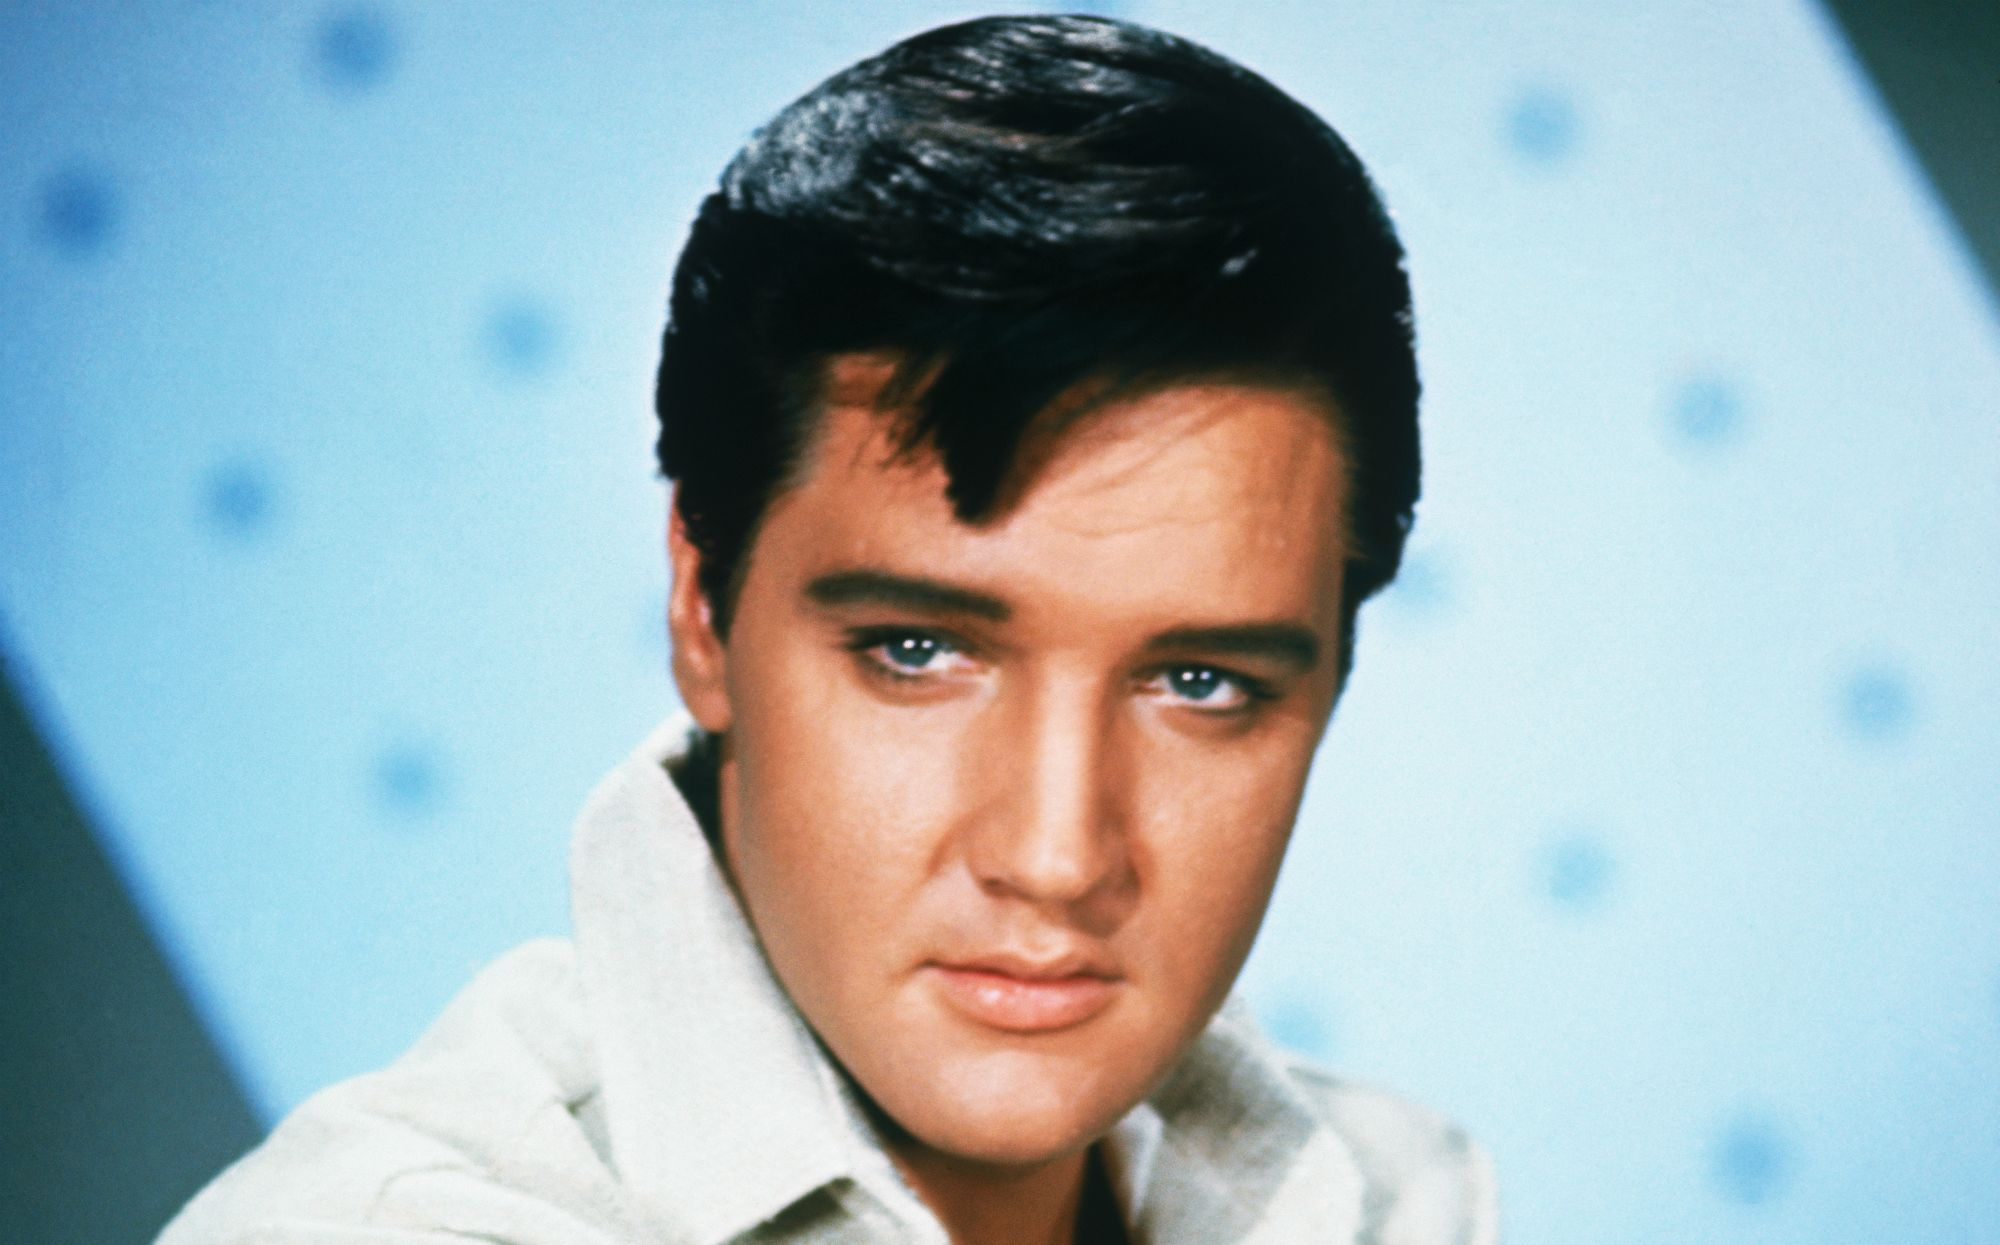 Elvis Presley (1935-1977), American rock 'n' roll legend.